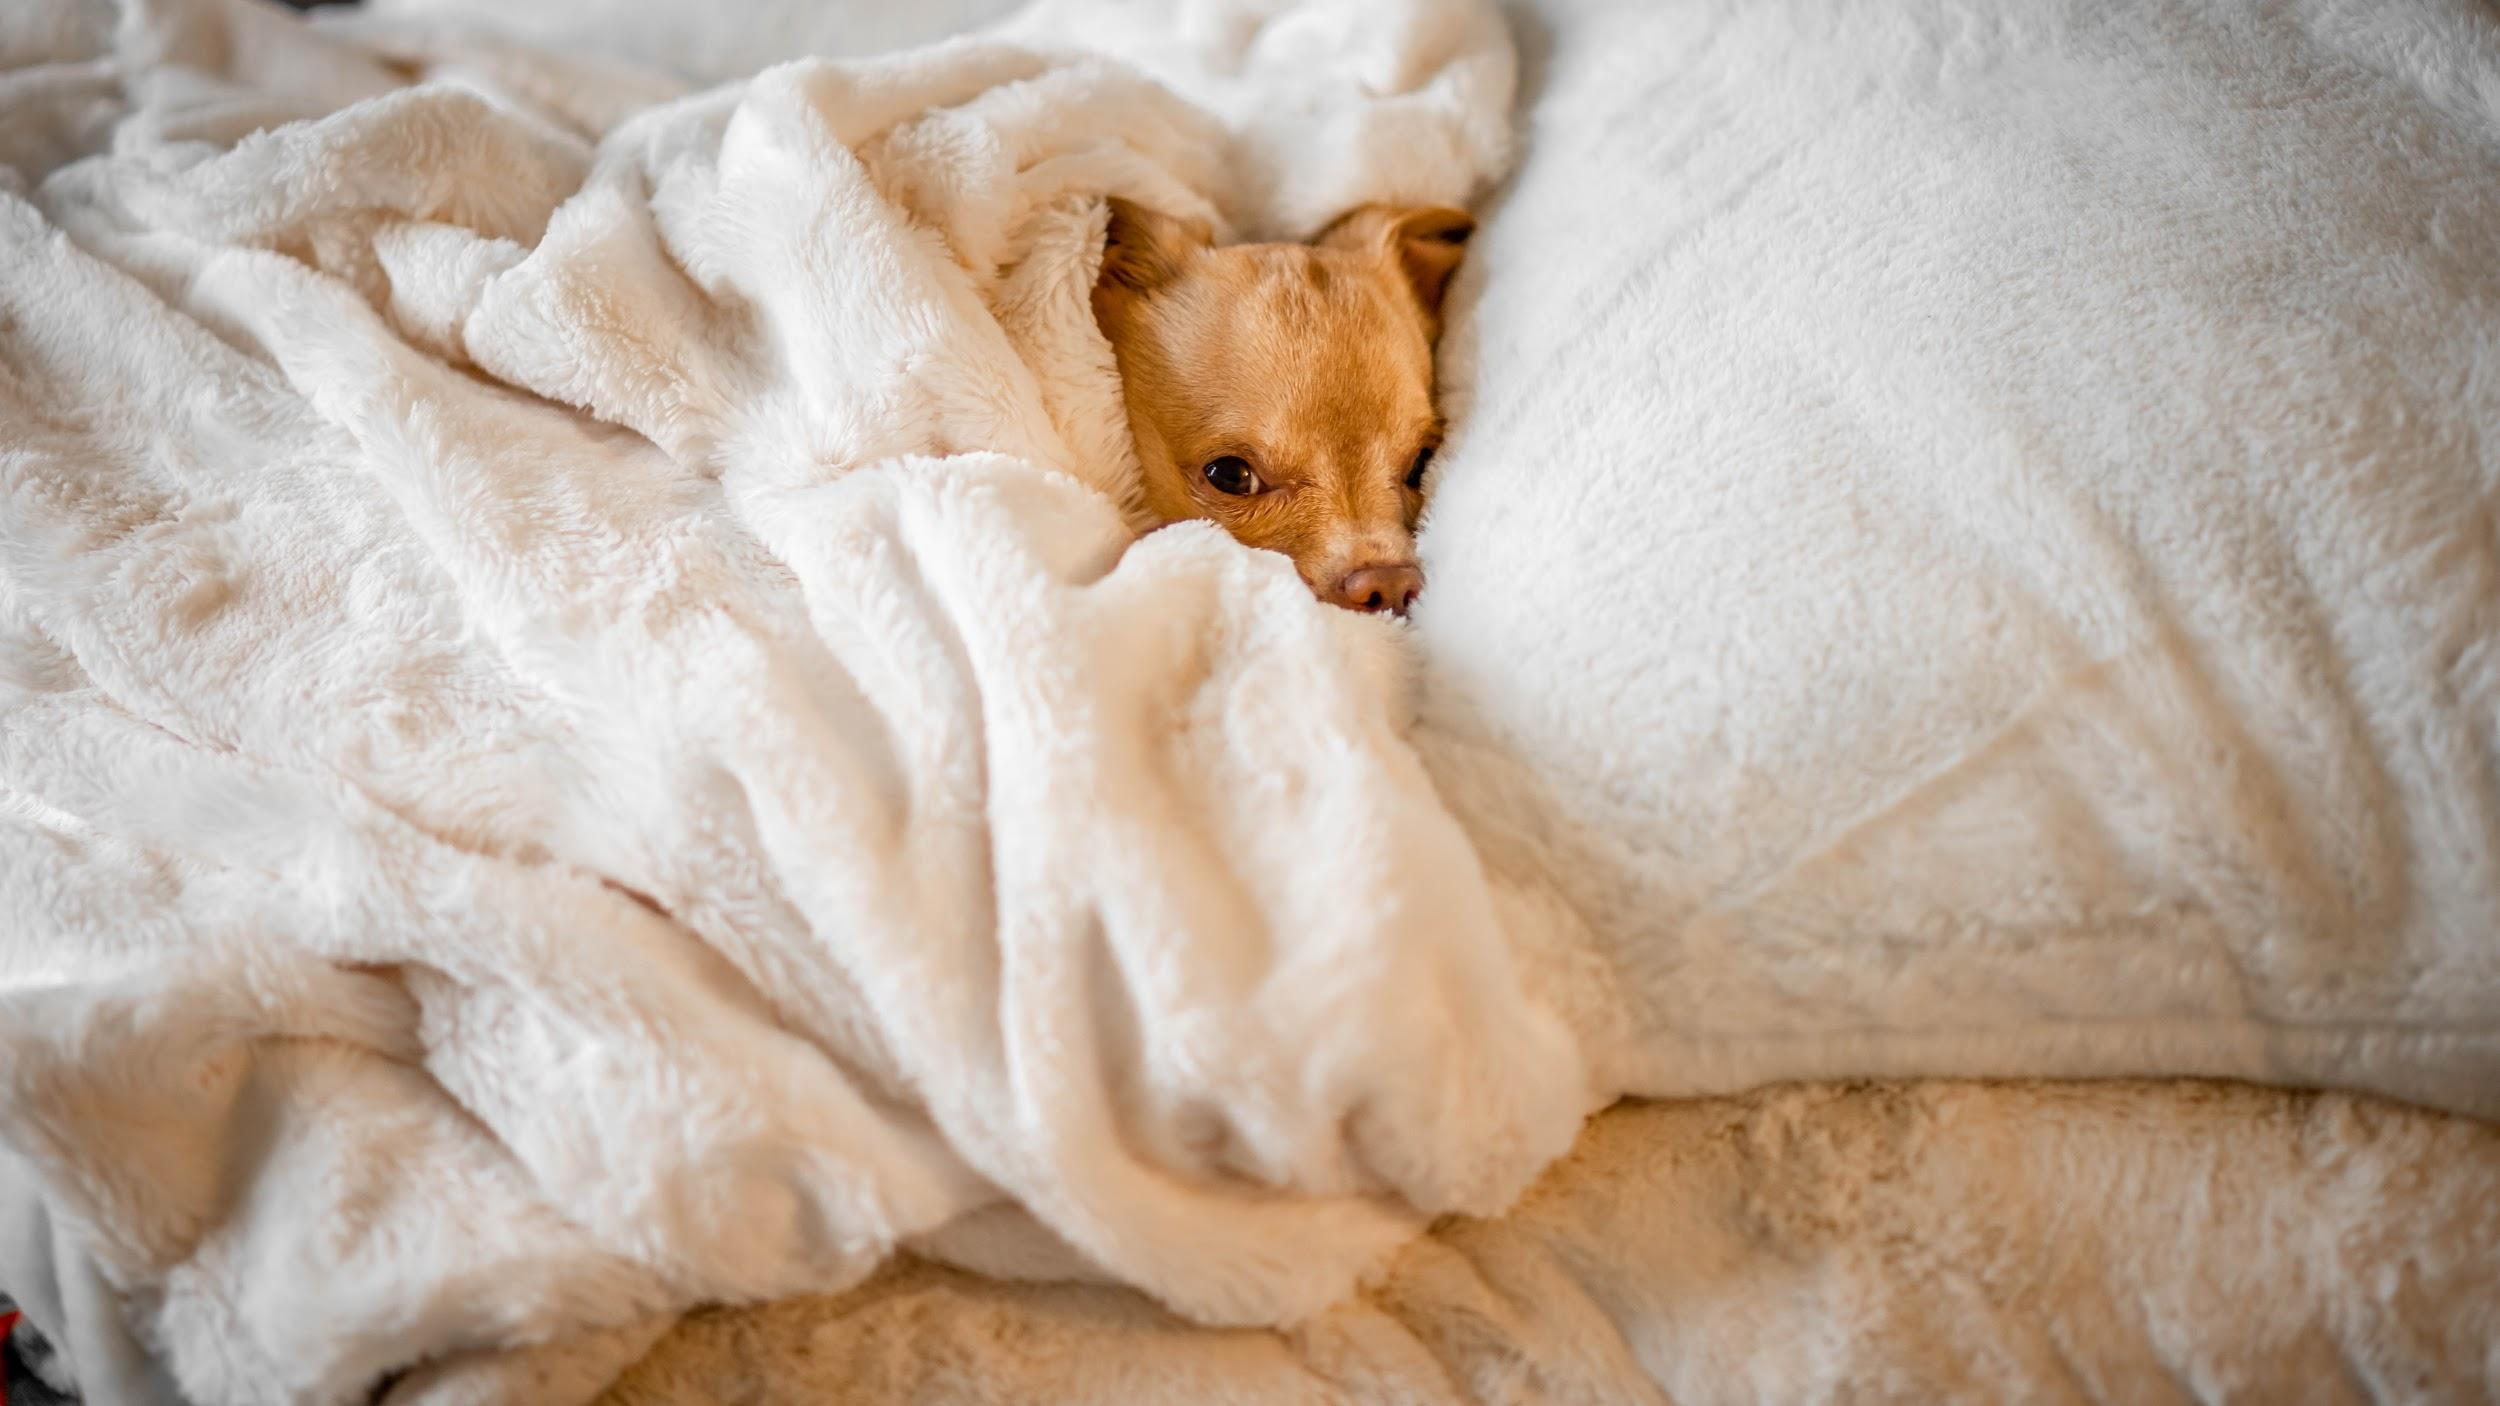 Oh… I thought this was my bed! Photo by Vlad Tchompalov on Unsplash